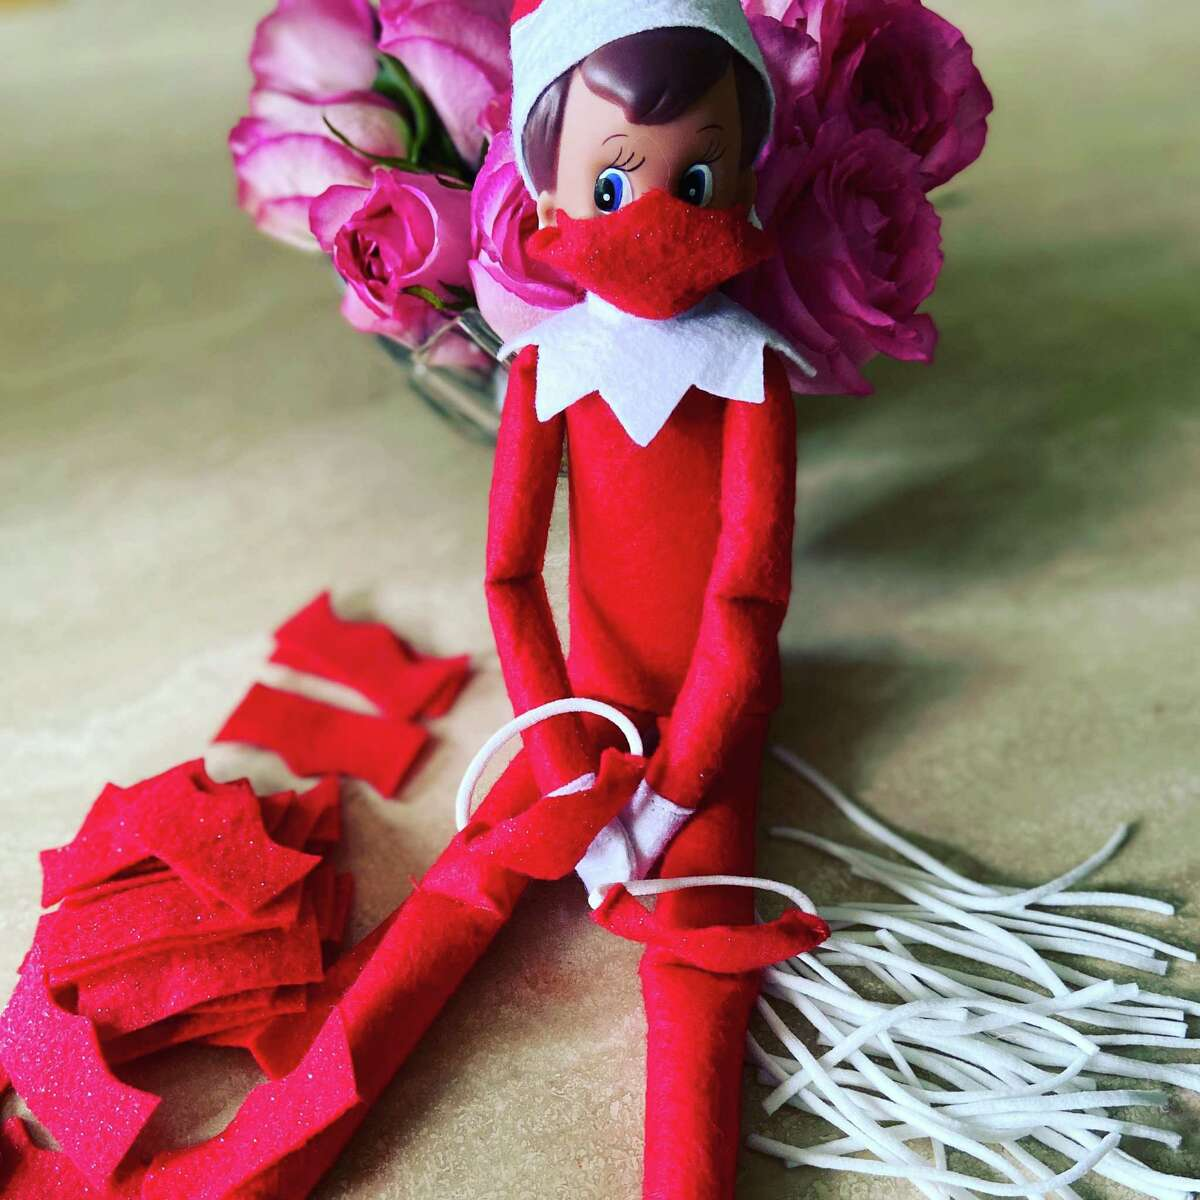 An Elf on the Shelf in PPE by Regina Salafia. The Elf on the Shelf company co-founder Chanda Bell and her mother wrote the eponymous children's book in 2005. Since then, countless families have been following the tradition of hiding Santa's elves each night. These little